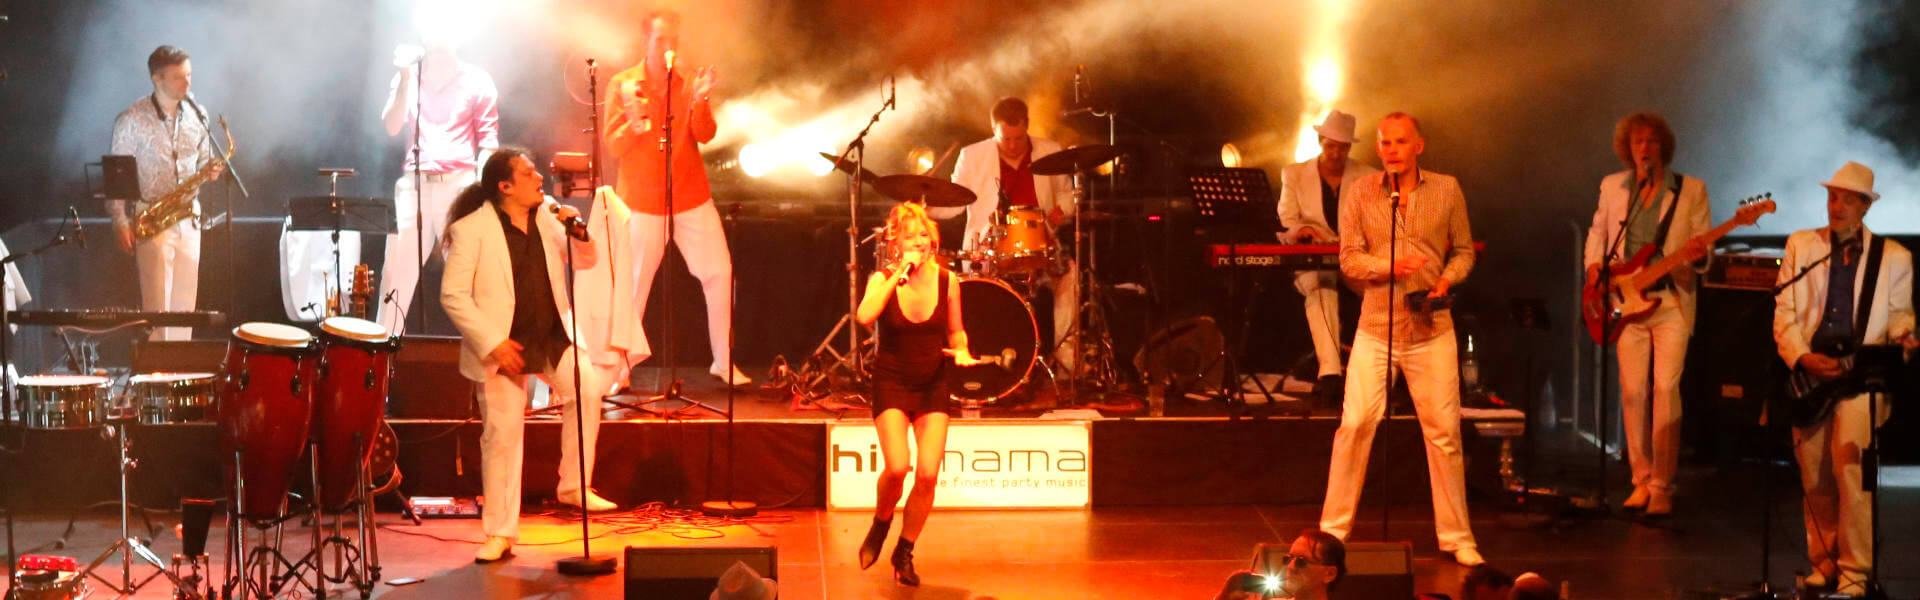 Coverband Berlin – Band Hit Mama